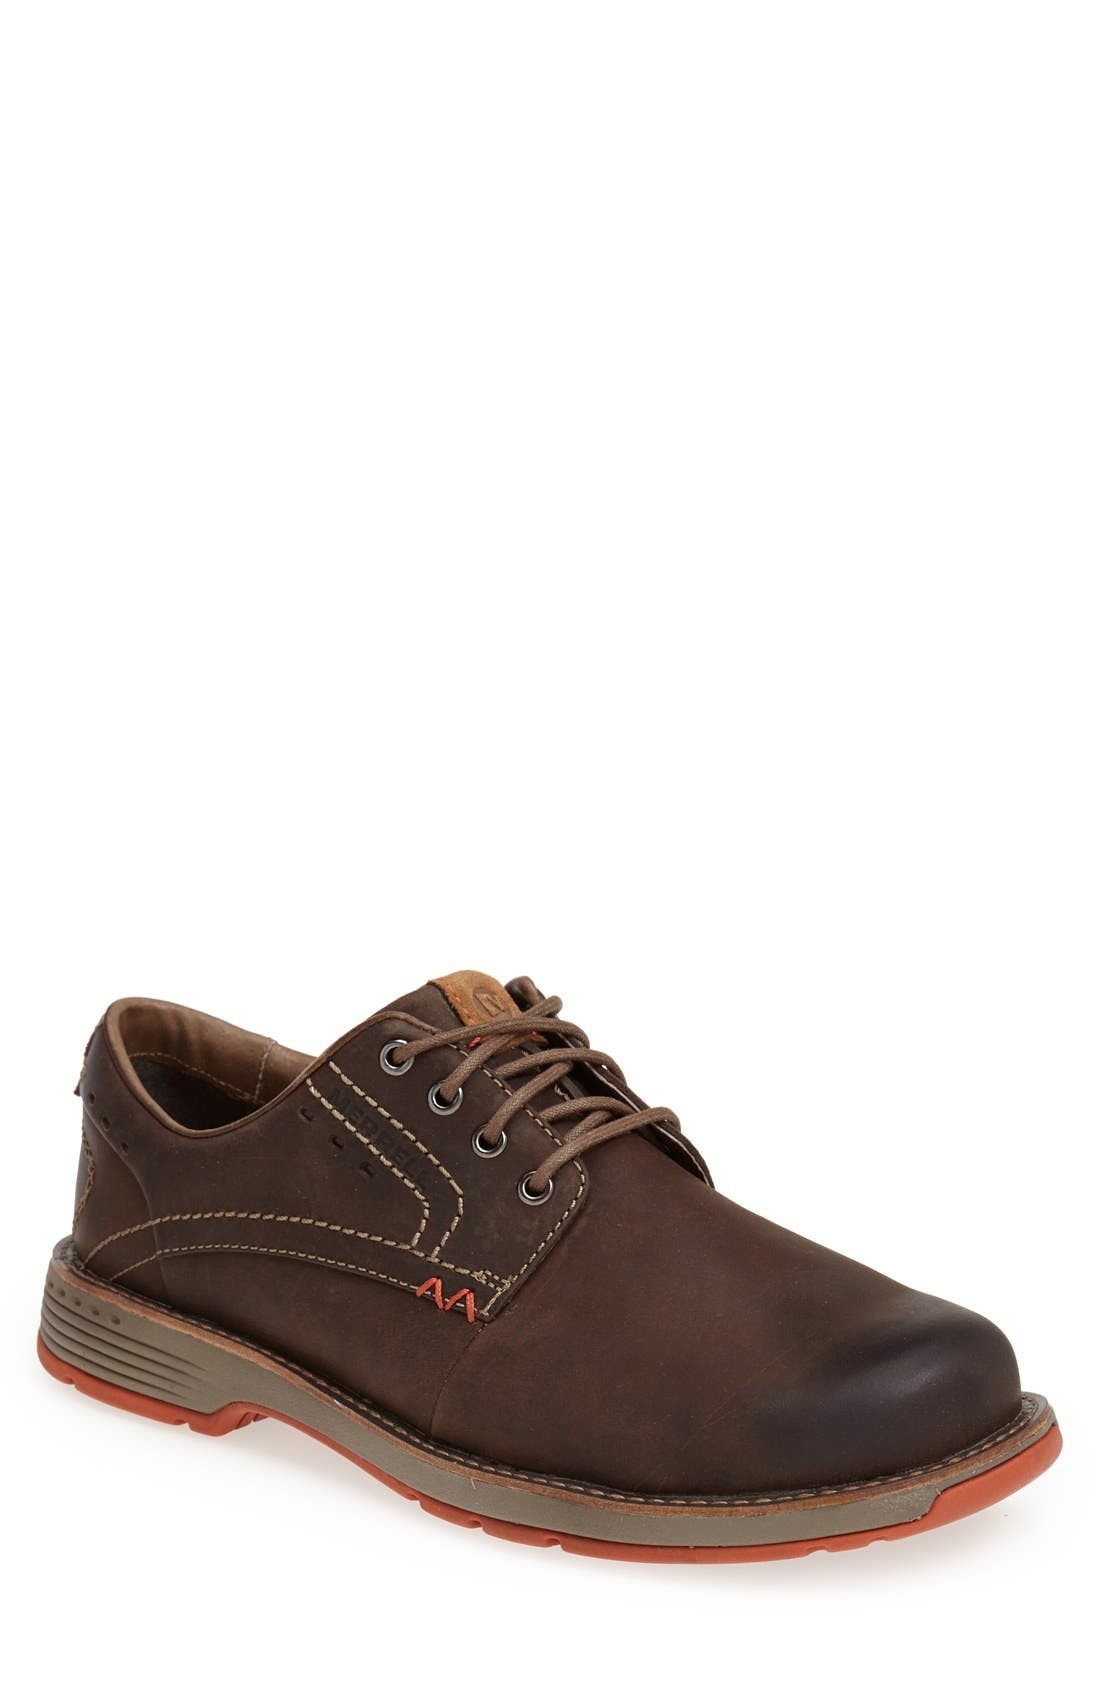 Alternate Image 1 Selected - Merrell 'Realm' Oxford